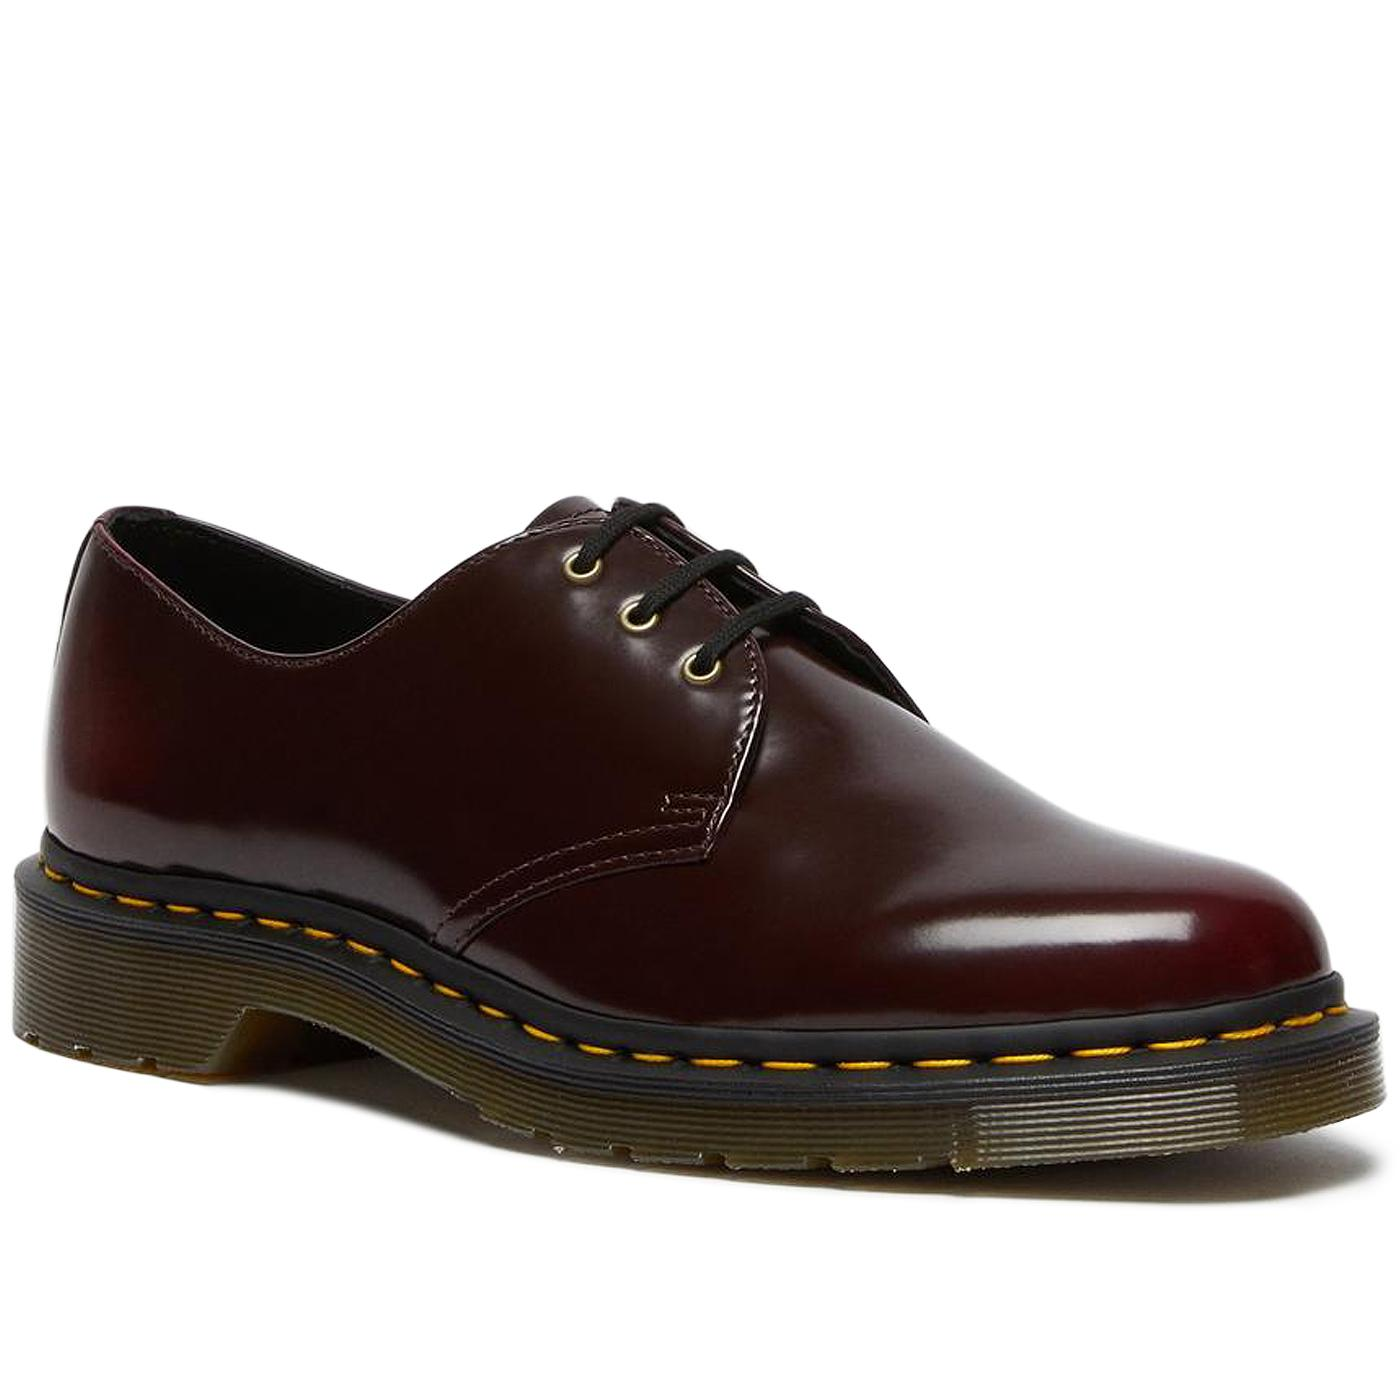 Vegan 1461 DR MARTENS Cherry Smooth Oxford Shoes